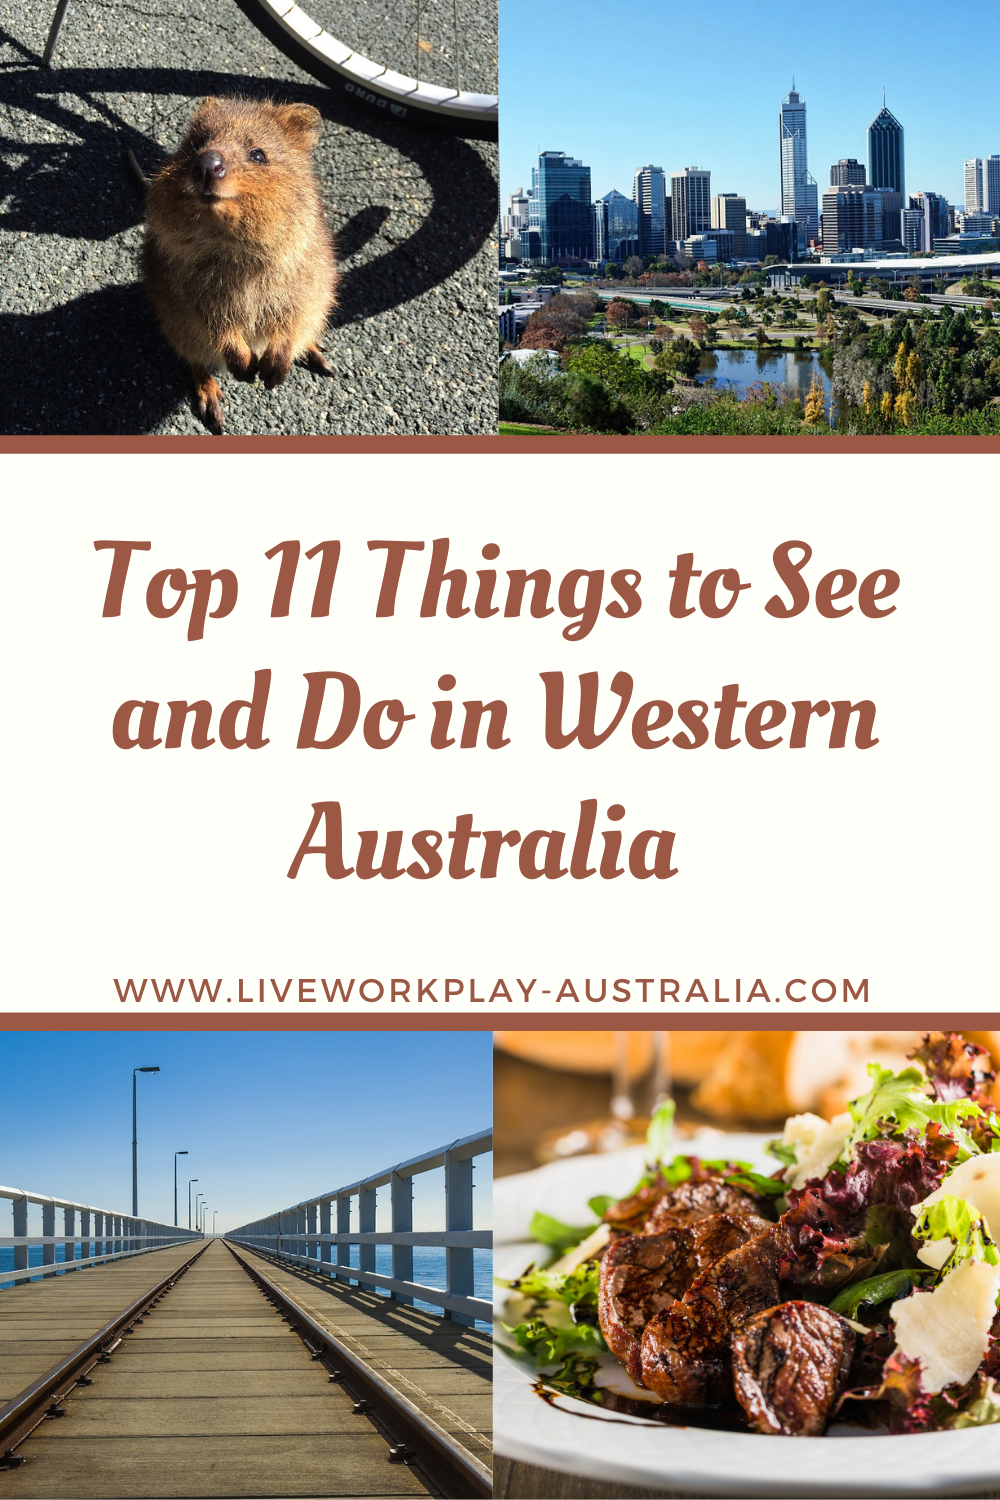 Pin Showing What To See And Do In Western Australia Like Seeing Quokka, the Busselton Jetty and Eating Fine Food At Margaret River.